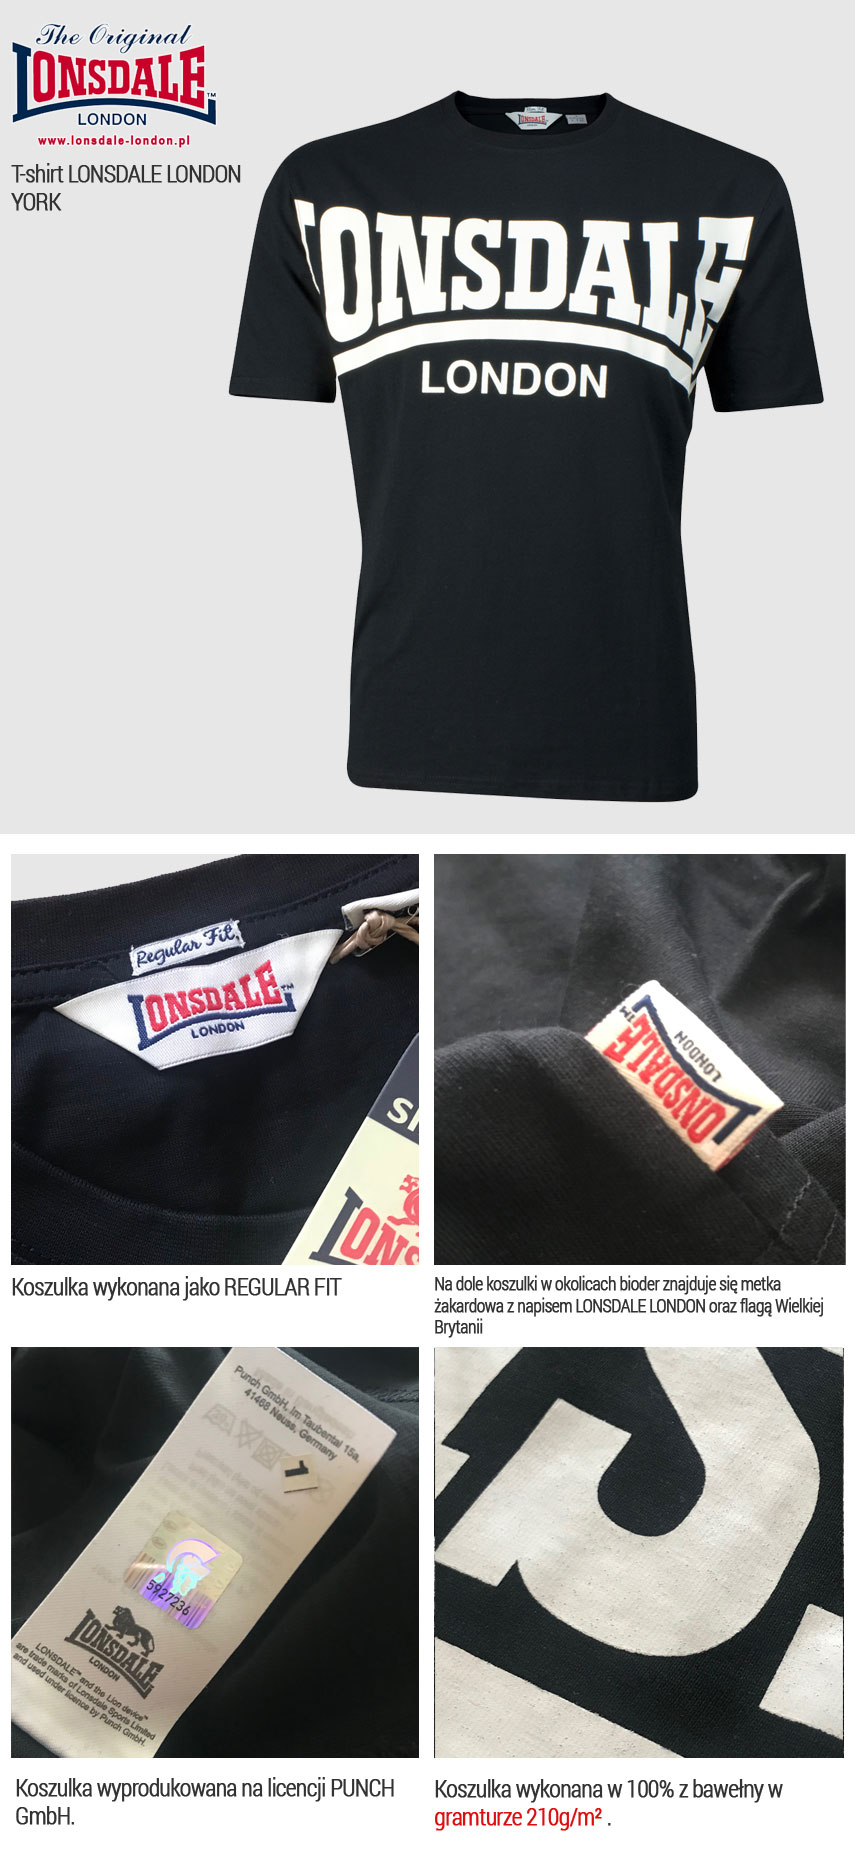 T-shirt Lonsdale London York